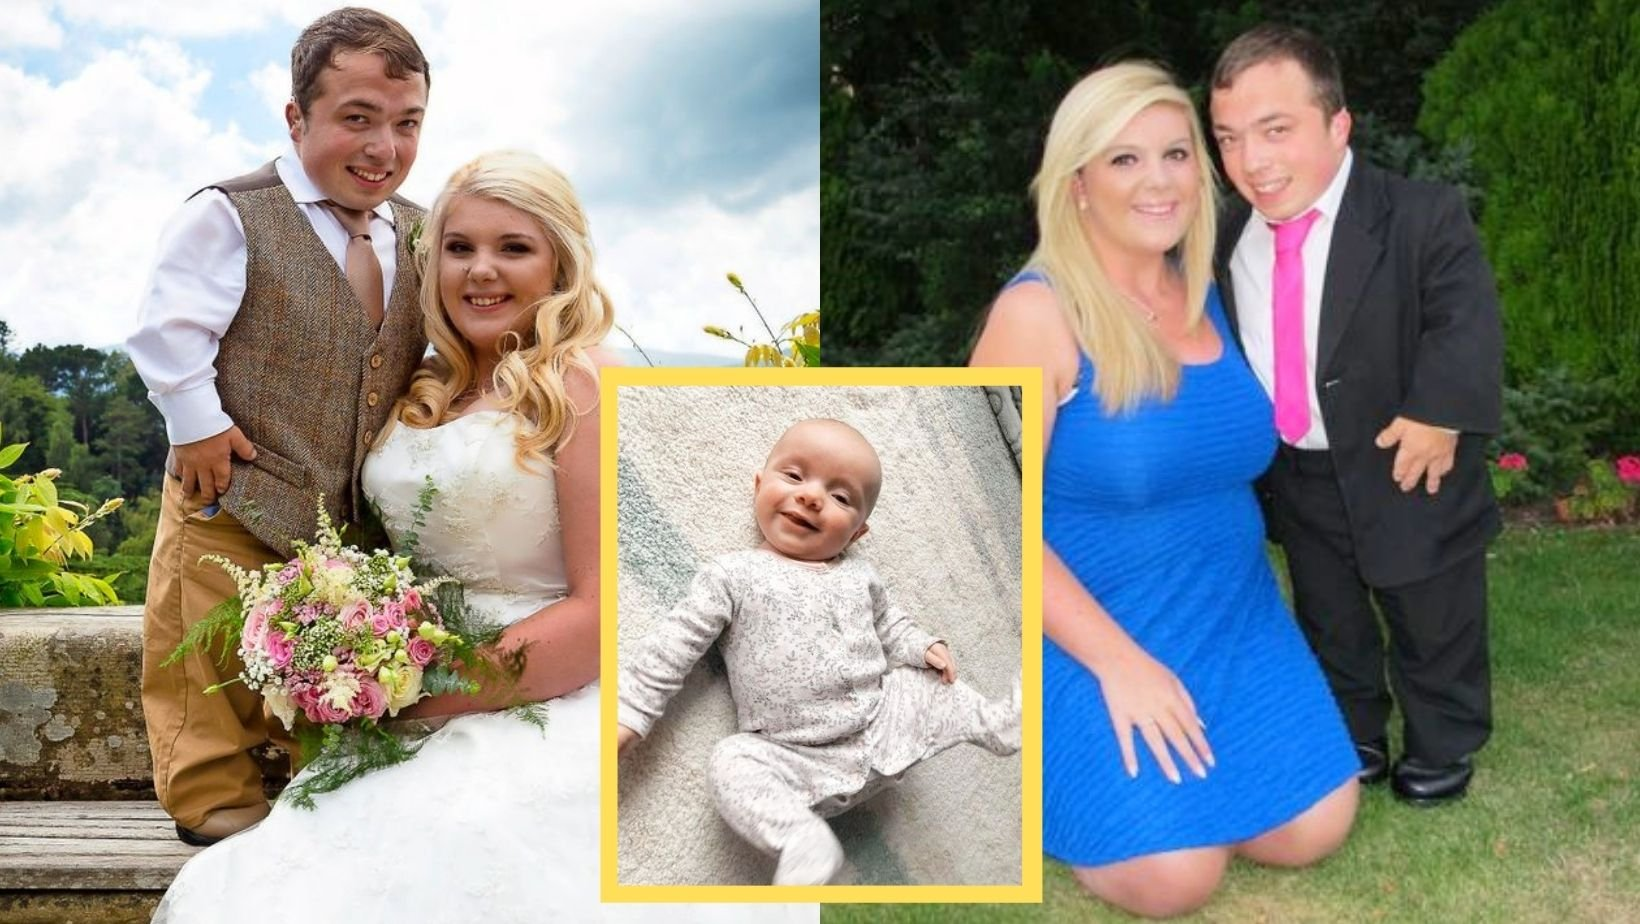 1 81.jpg?resize=1200,630 - Woman Marries Boyfriend With Dwarfism Despite Her Family's Disapproval Of Their Relationship